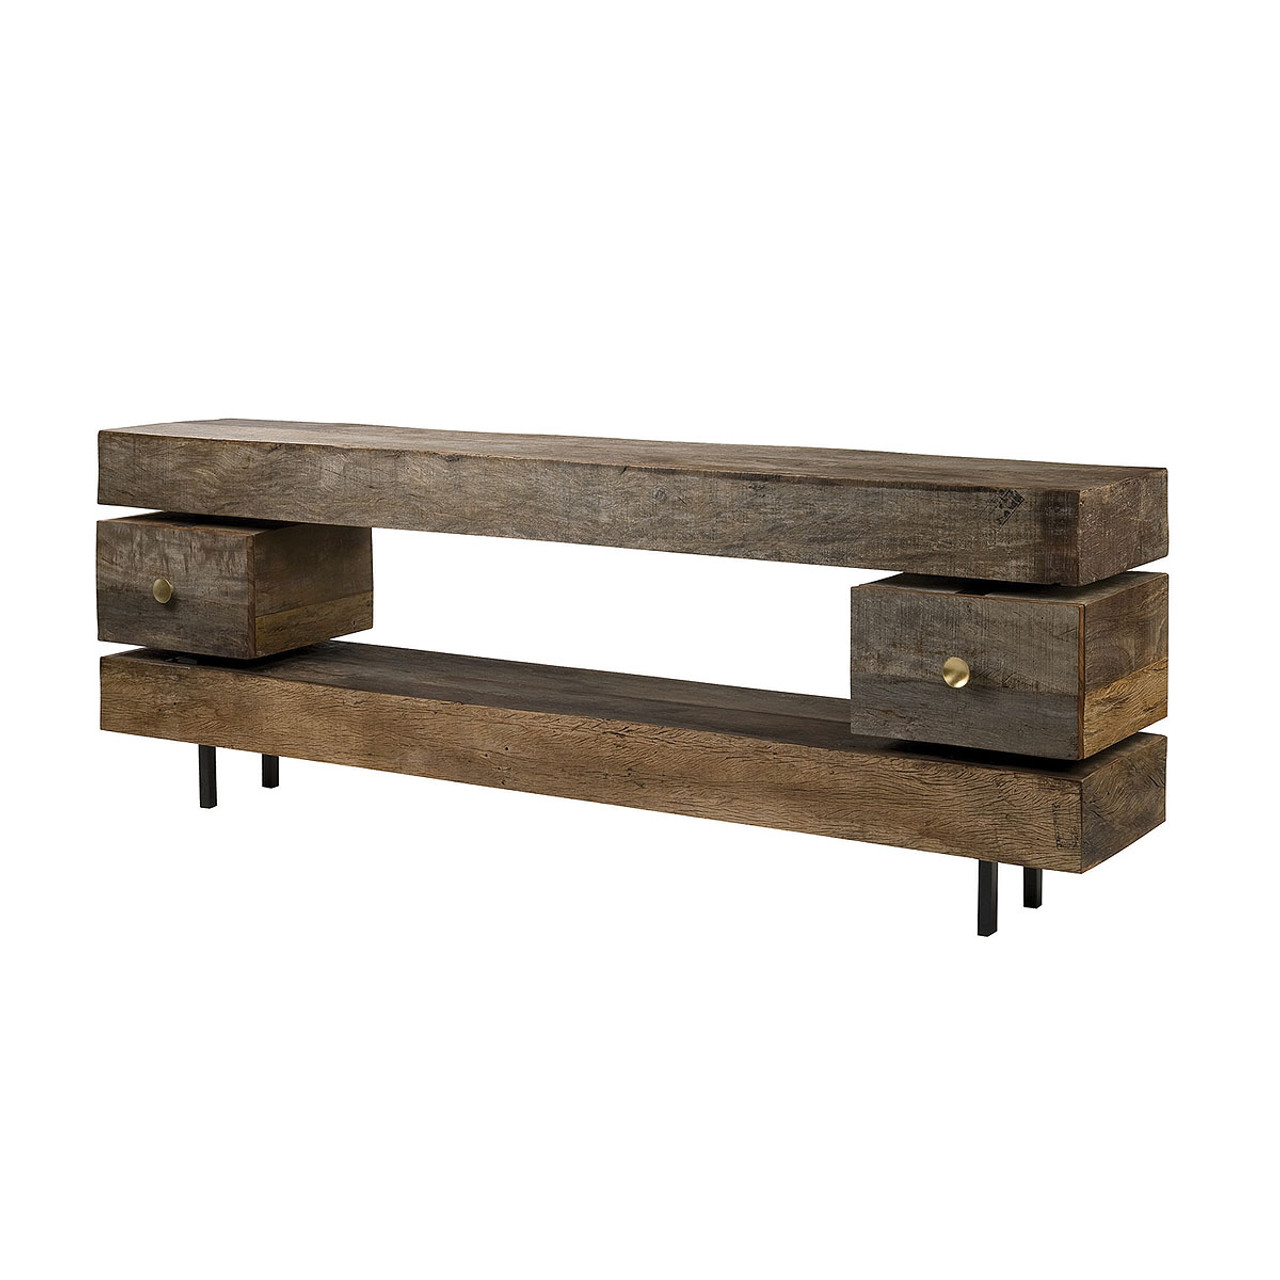 Dillon reclaimed wood console table zin home dillon reclaimed wood console table geotapseo Gallery